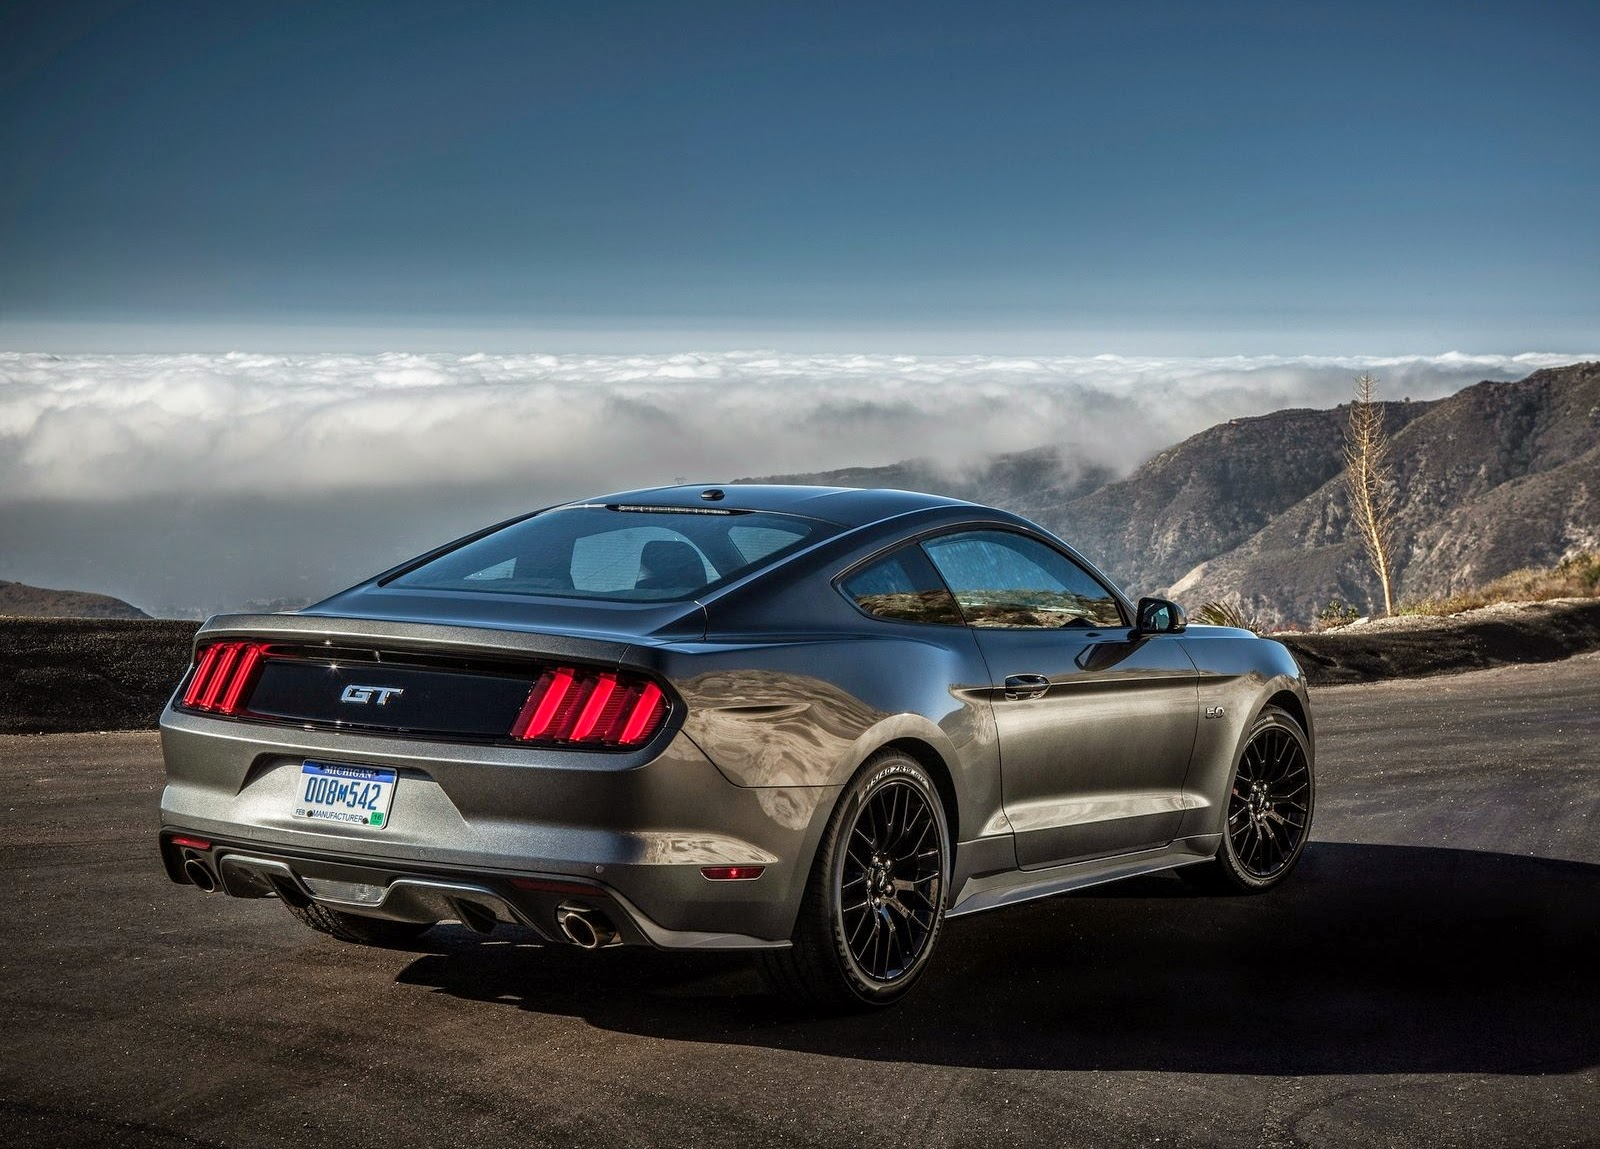 Ford Mustang Gt Awesome Hd Car Wallpaper Car Wallpaper Hd